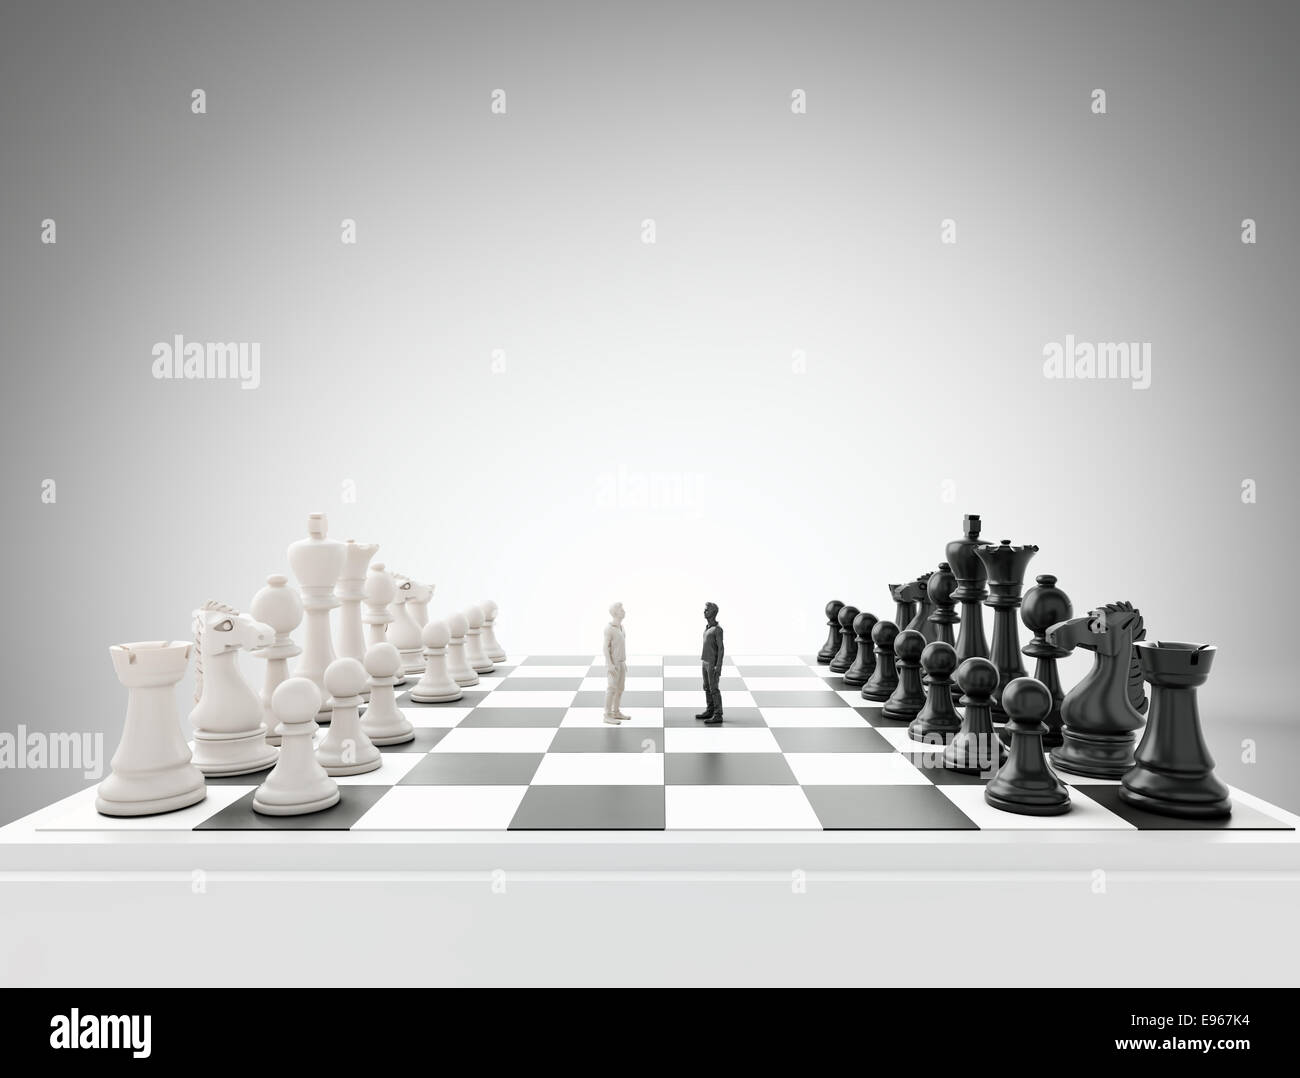 Two tiny figures standing on a chess board - conflict and competition concept illustration Stock Photo